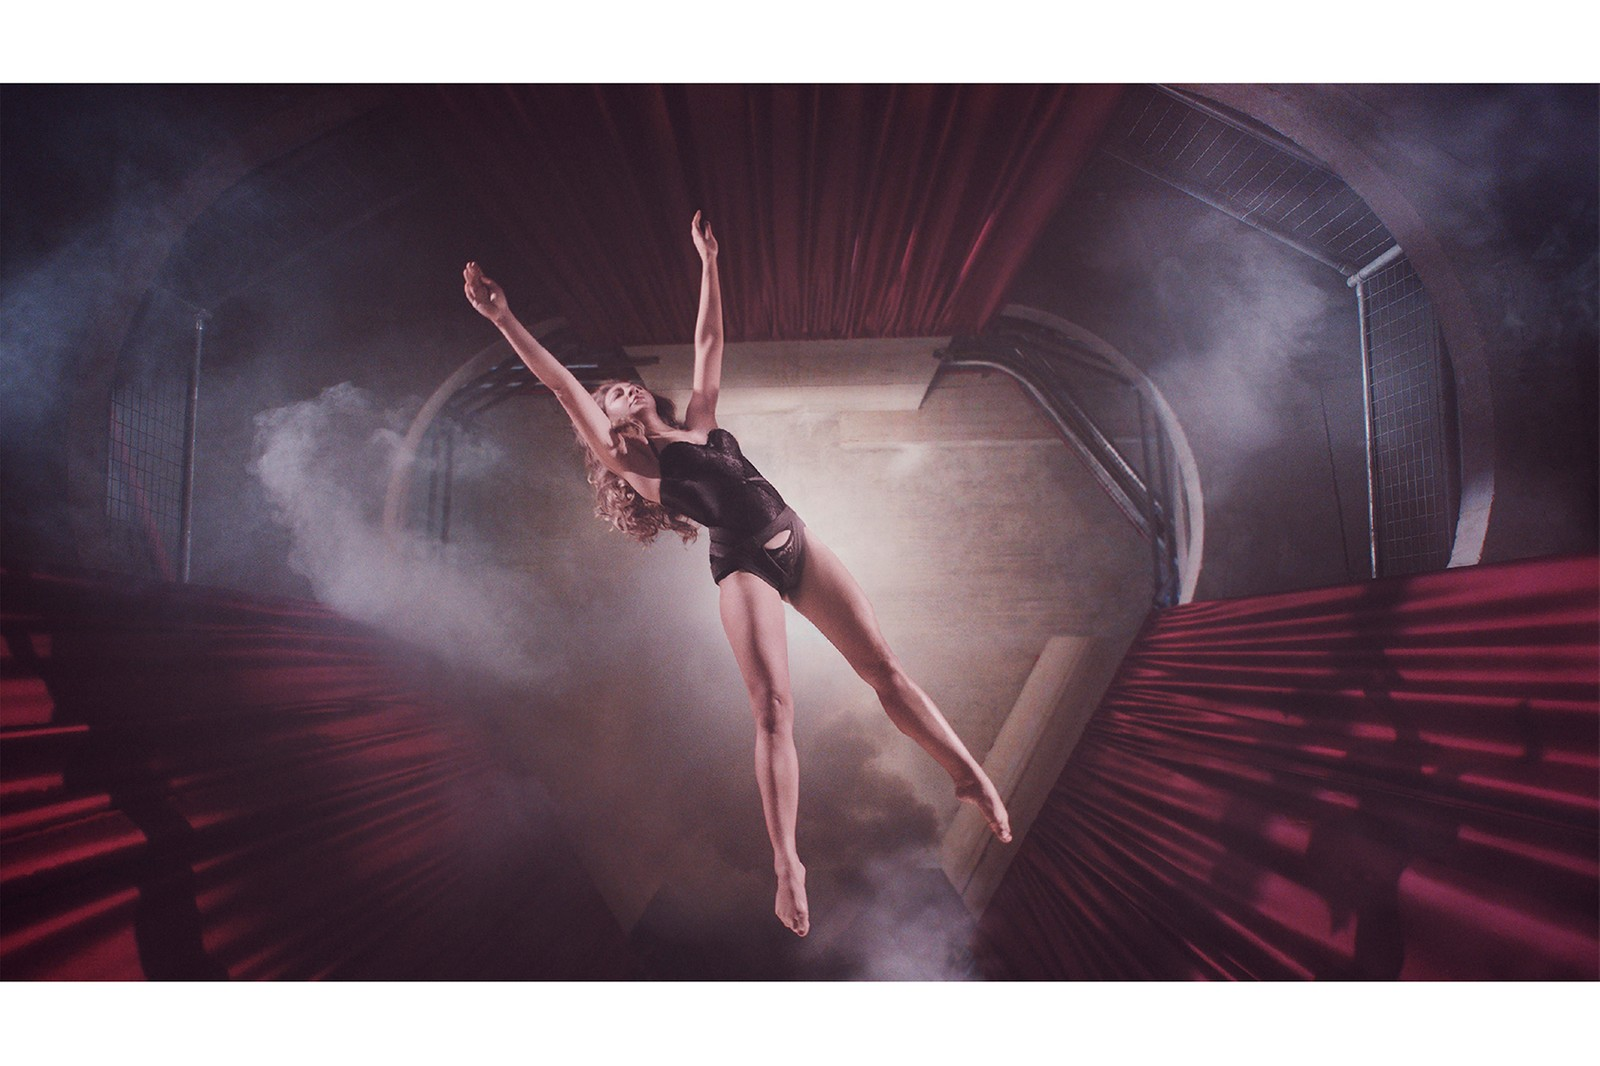 agent provocateur fall winter 2019 lingerie campaign dance choreography ballet club